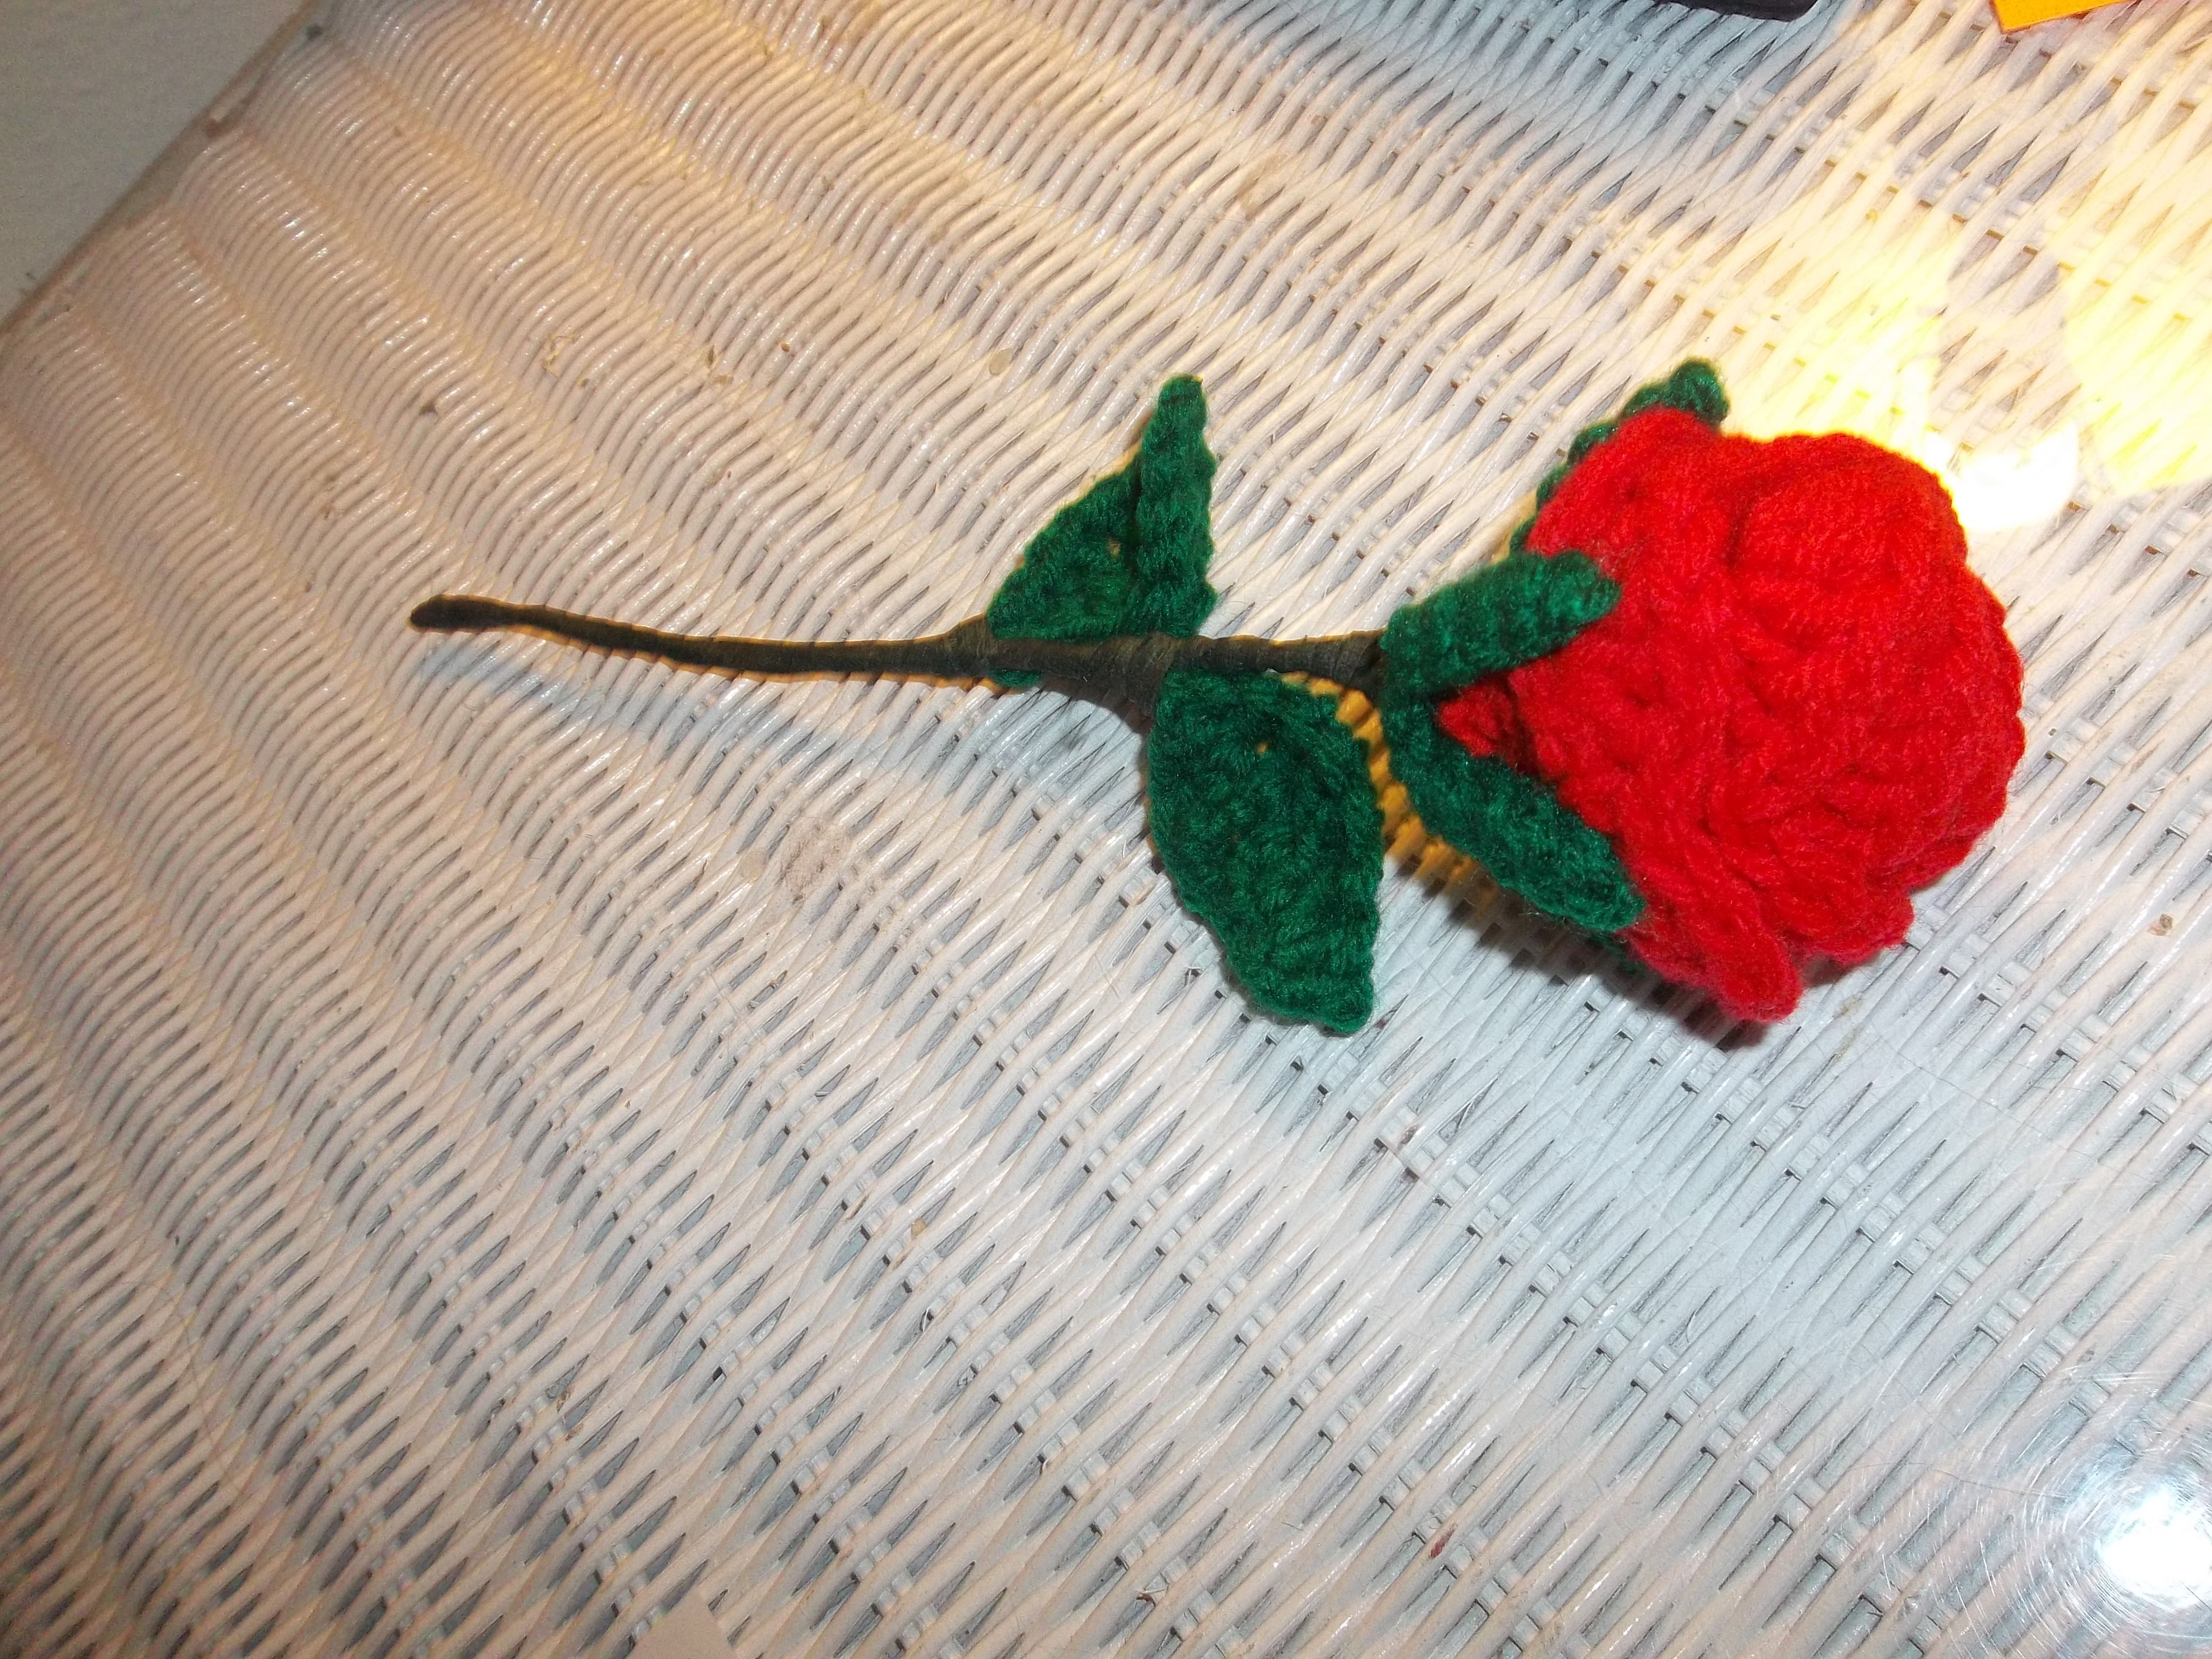 Crochet rose - consignment WG Sold $2.50 each (4)